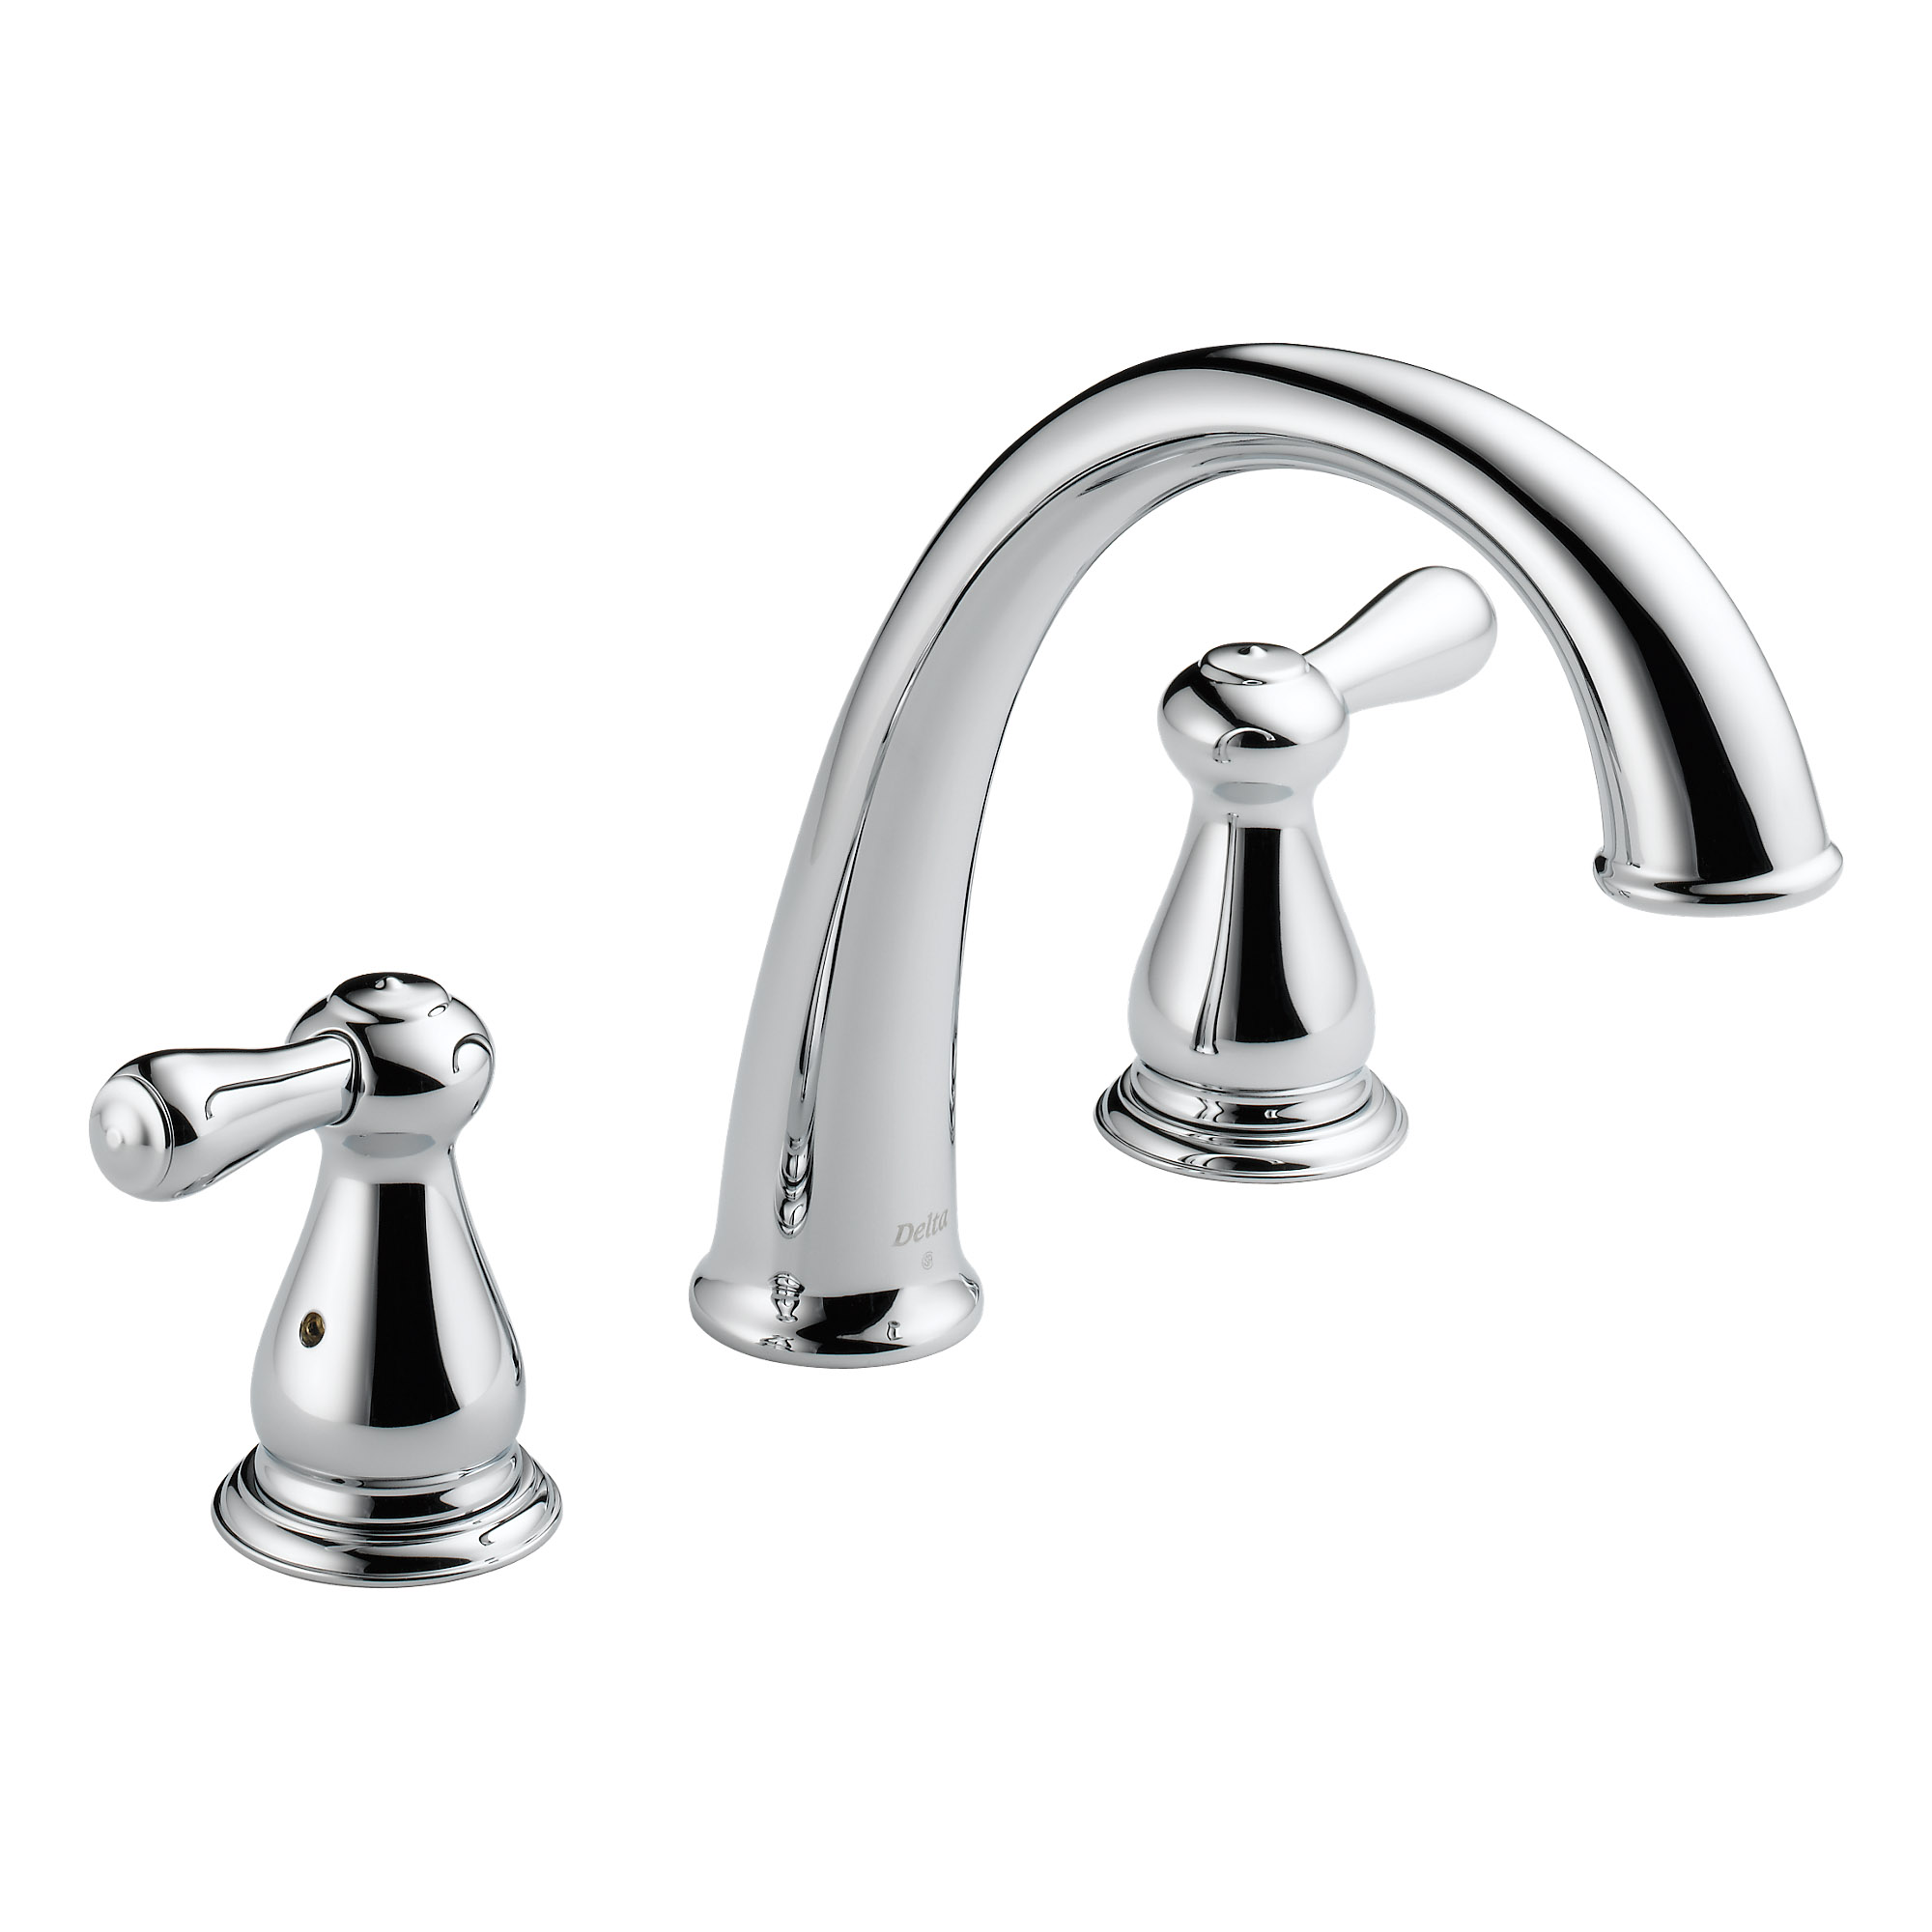 Delta Faucets Roman Two Handle Bathroom Tub Faucet Trim